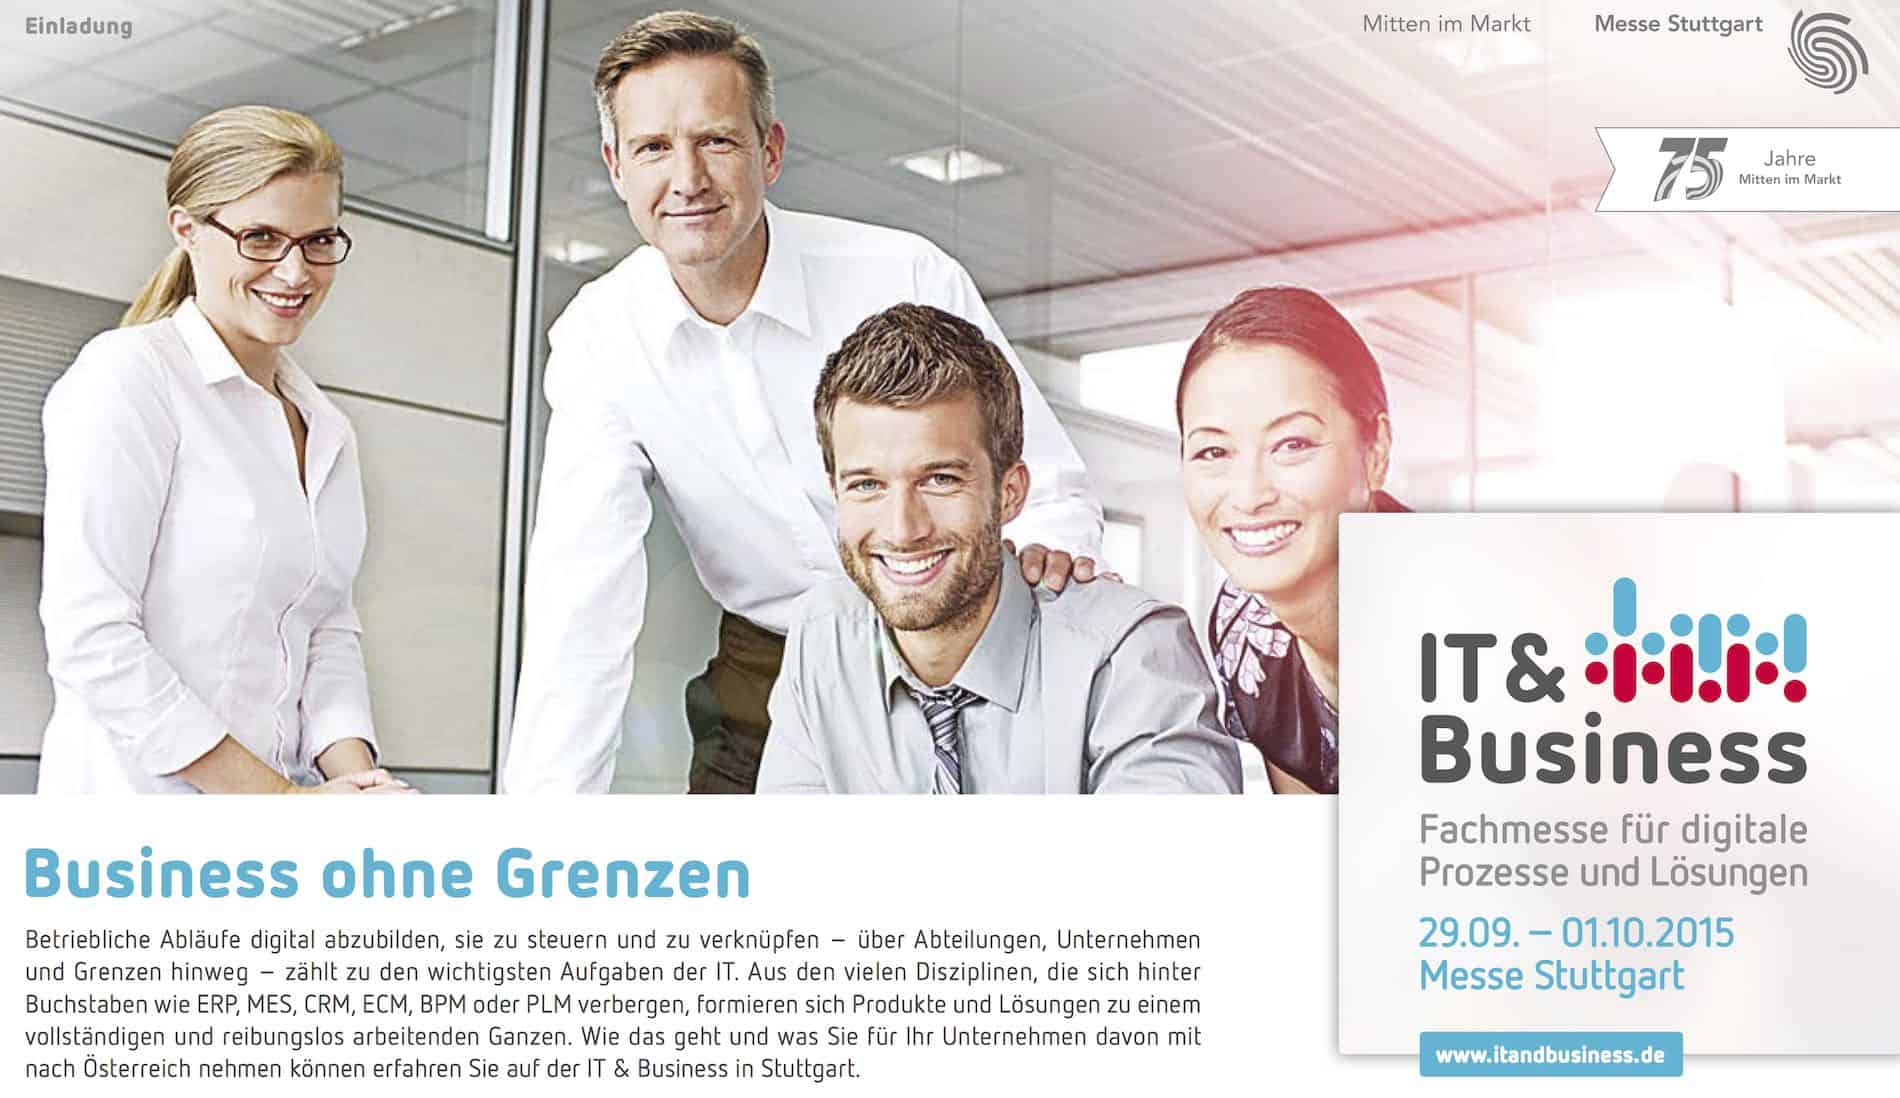 IT & Business Messe in Stuttgart